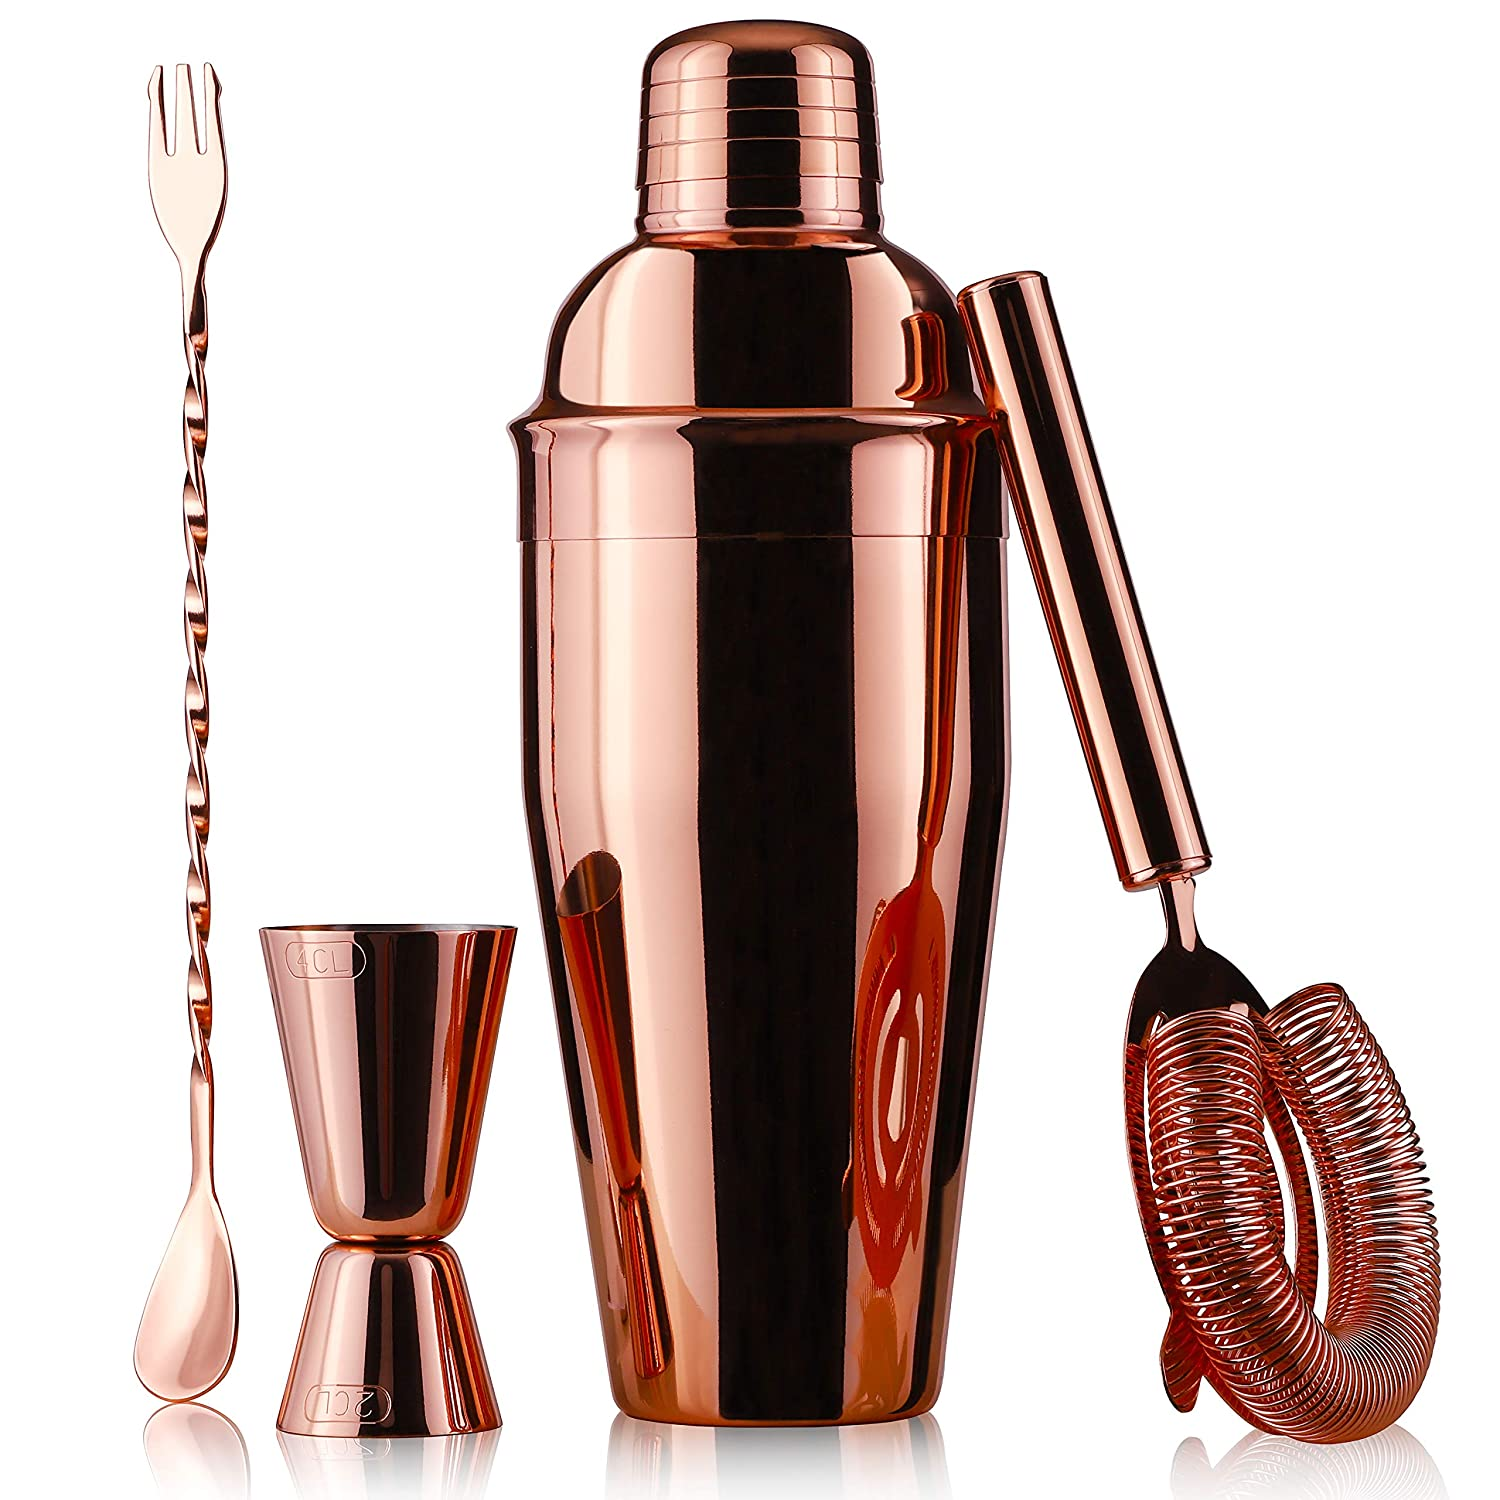 Juvale Copper Plated Stainless Steel Cocktail Set, Includes Shaker, Bar Mixing Spoon, Jigger and Ice Strainer, Black, 4 Piece Set